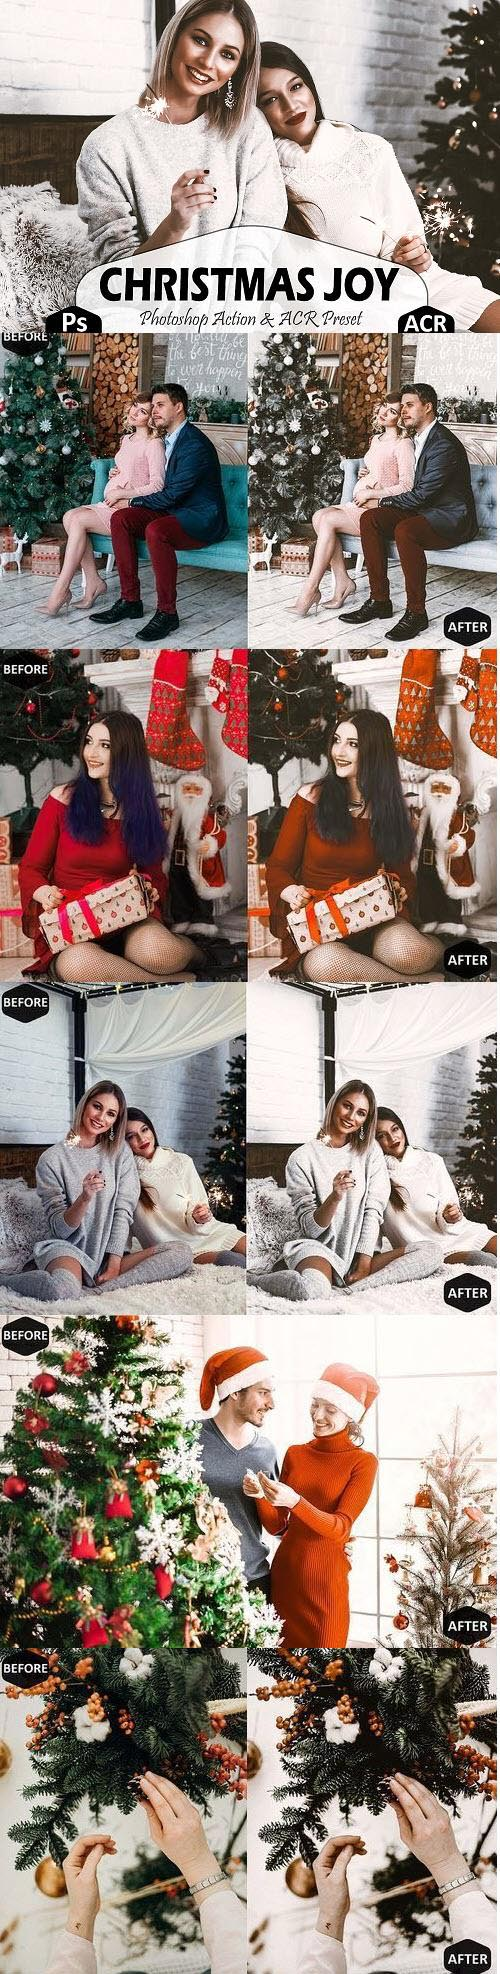 Christmas Joy Photoshop Actions And ACR Presets, brown Xmas - 406947